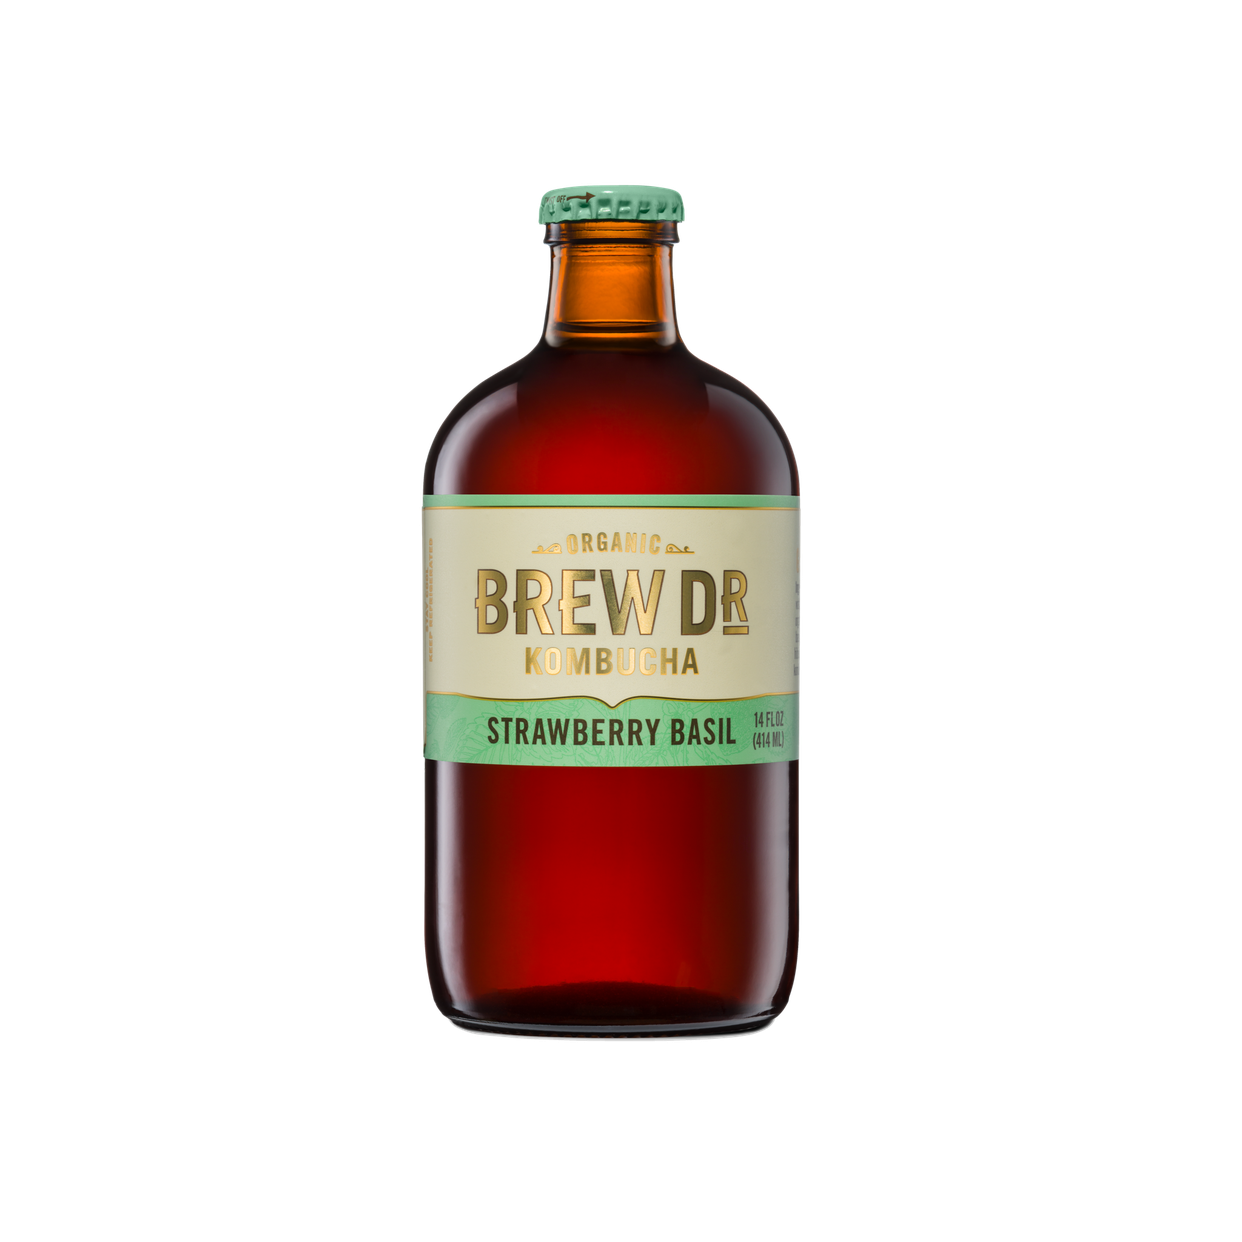 brew dr. kombucha - strawberry basil